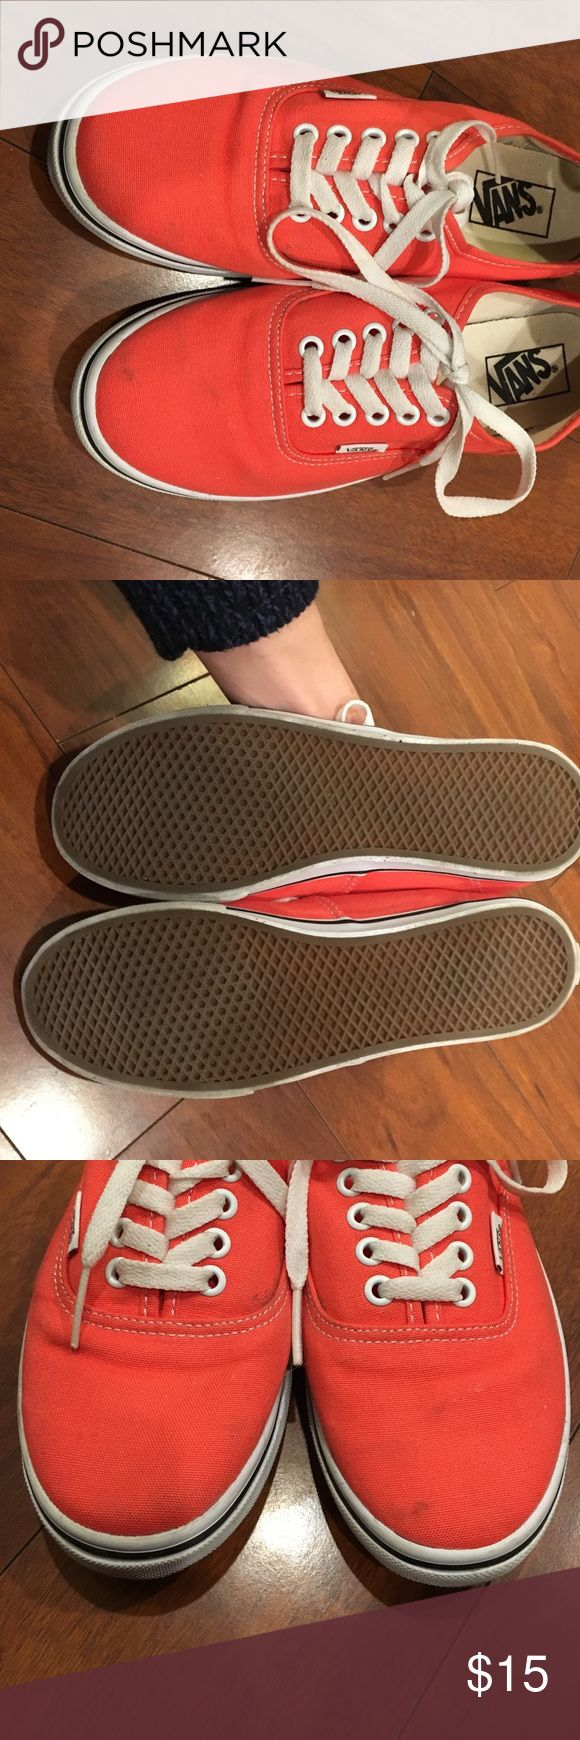 Lightly Worn Coral Vans! These Vans are in great condition!  They have a few small marks, as I wore them once to the park before realizing I needed a bigger size.  They've been sitting in my storage bin so they're a little bent out of shape (see picture) but nothing major. Vans Shoes Sneakers